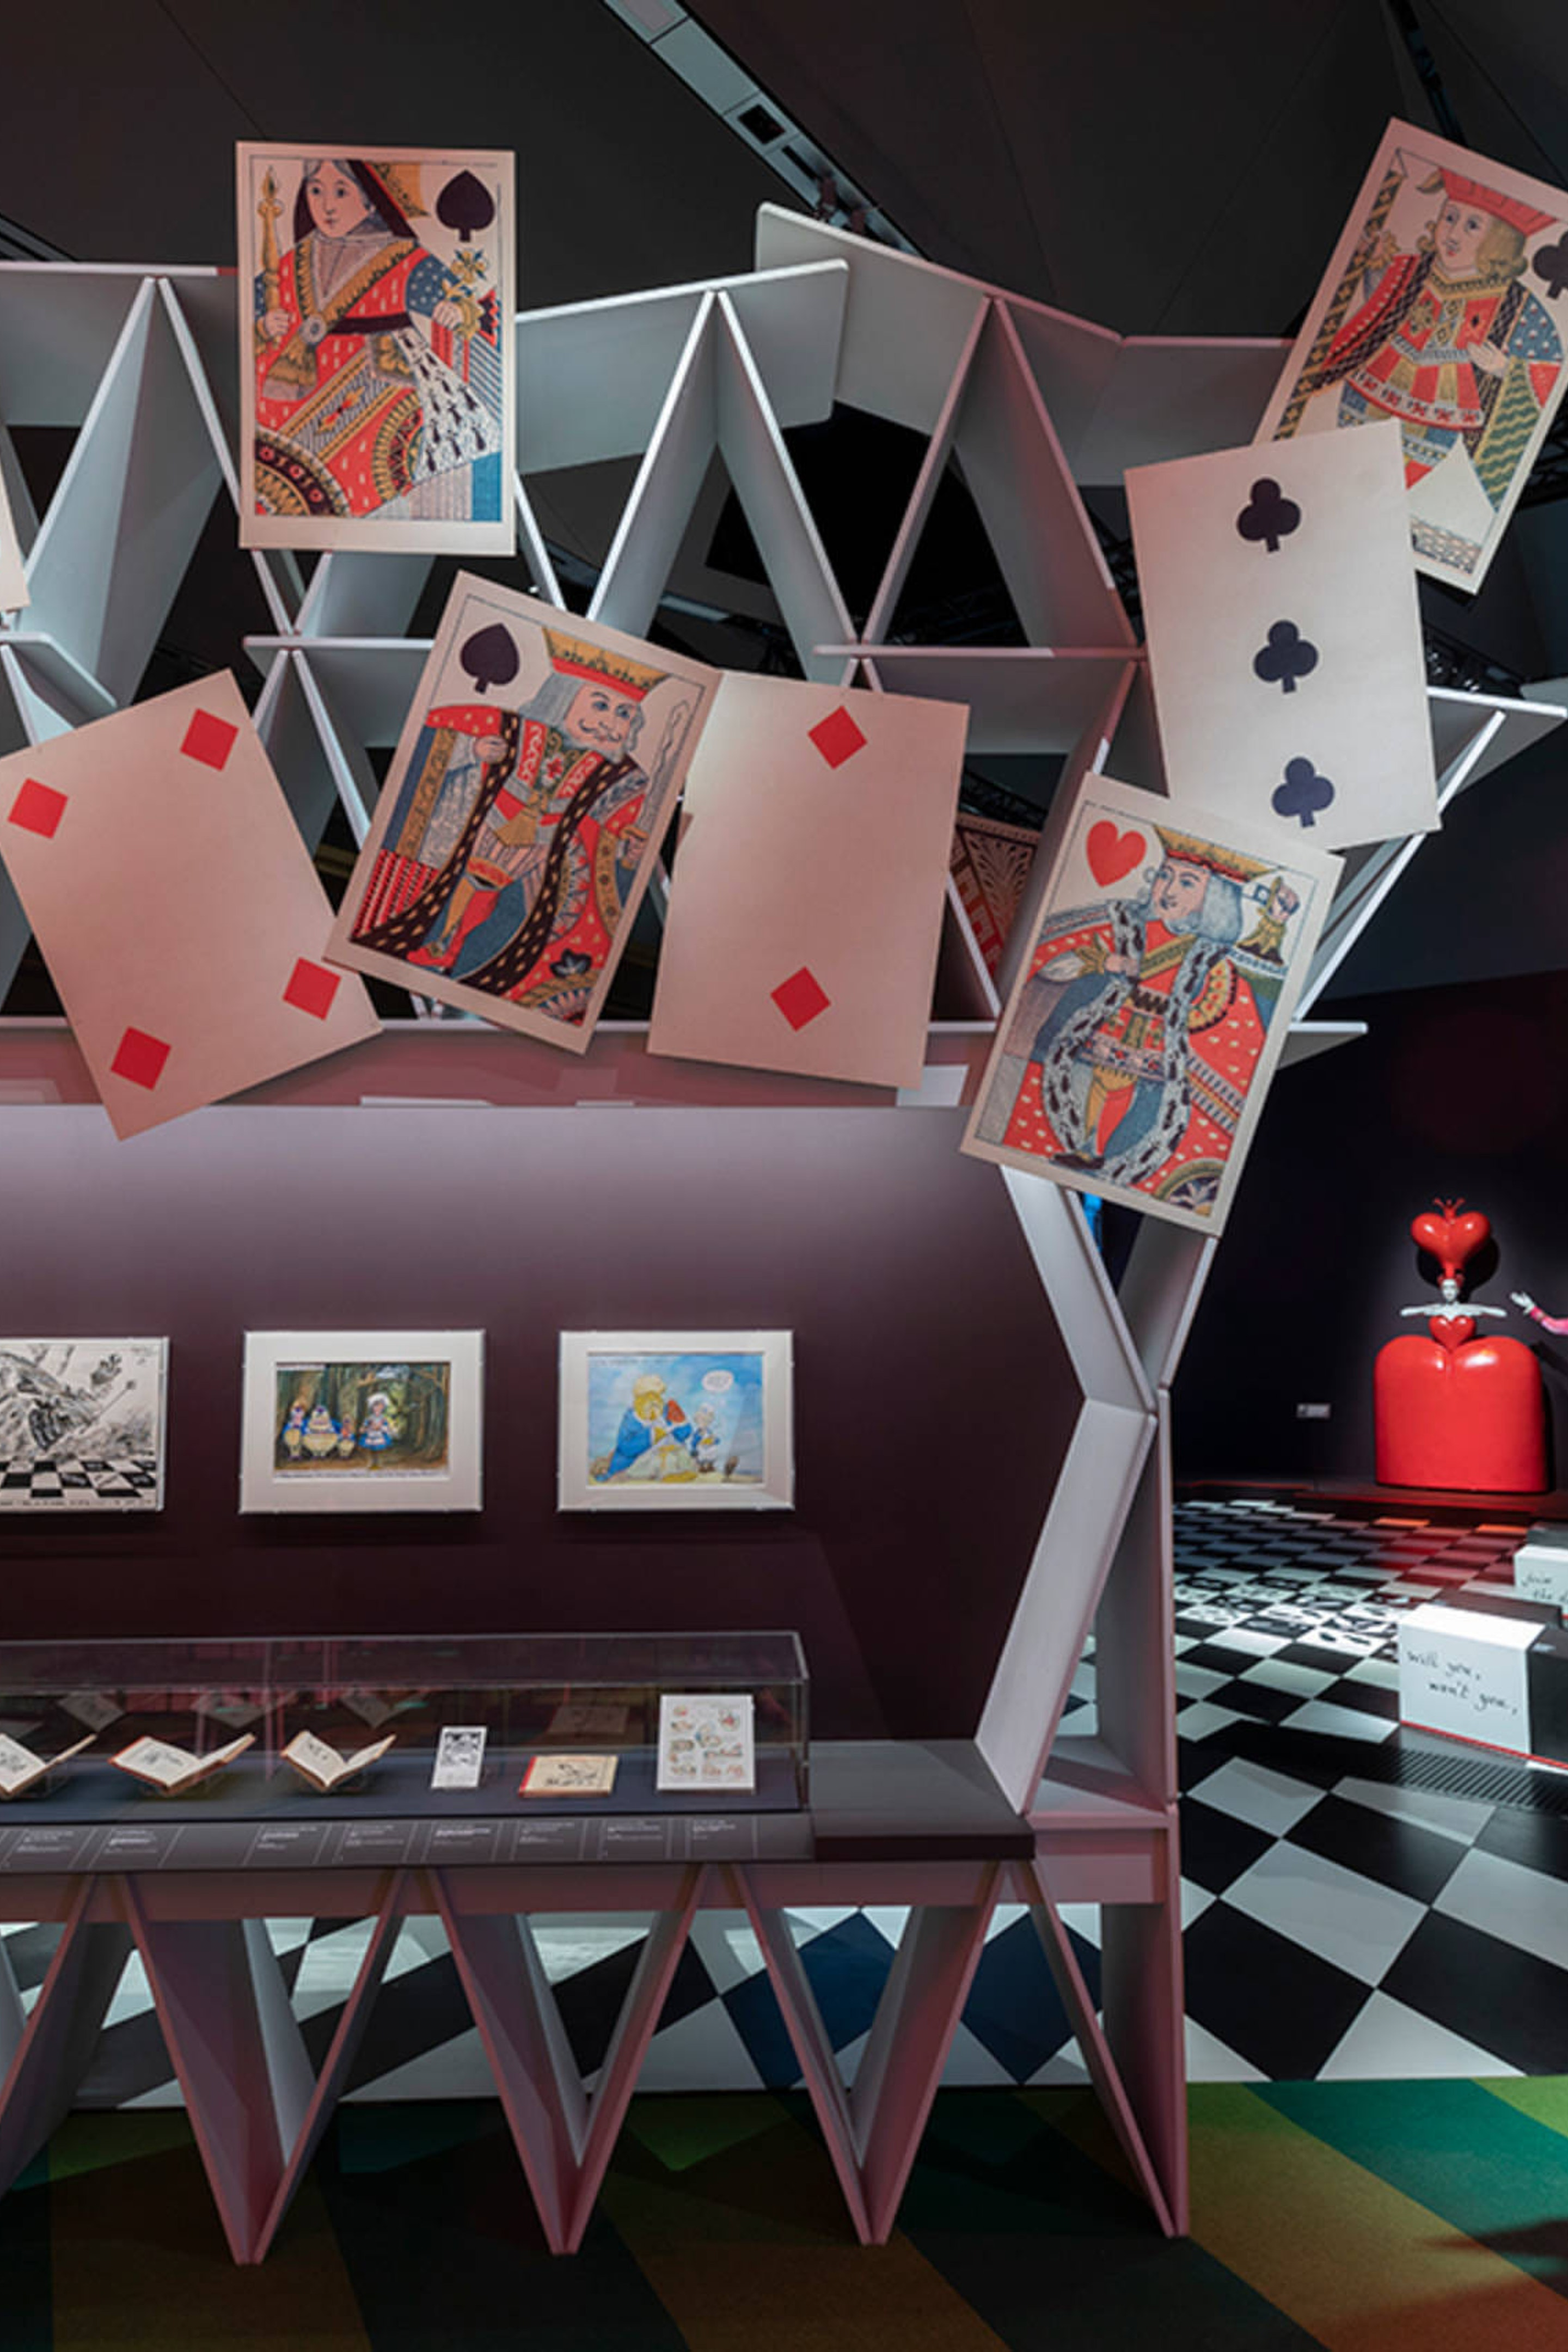 A Journey Through the Looking Glass: A Review of The V&A Exhibition 'Alice: Curiouser and Curiouser'